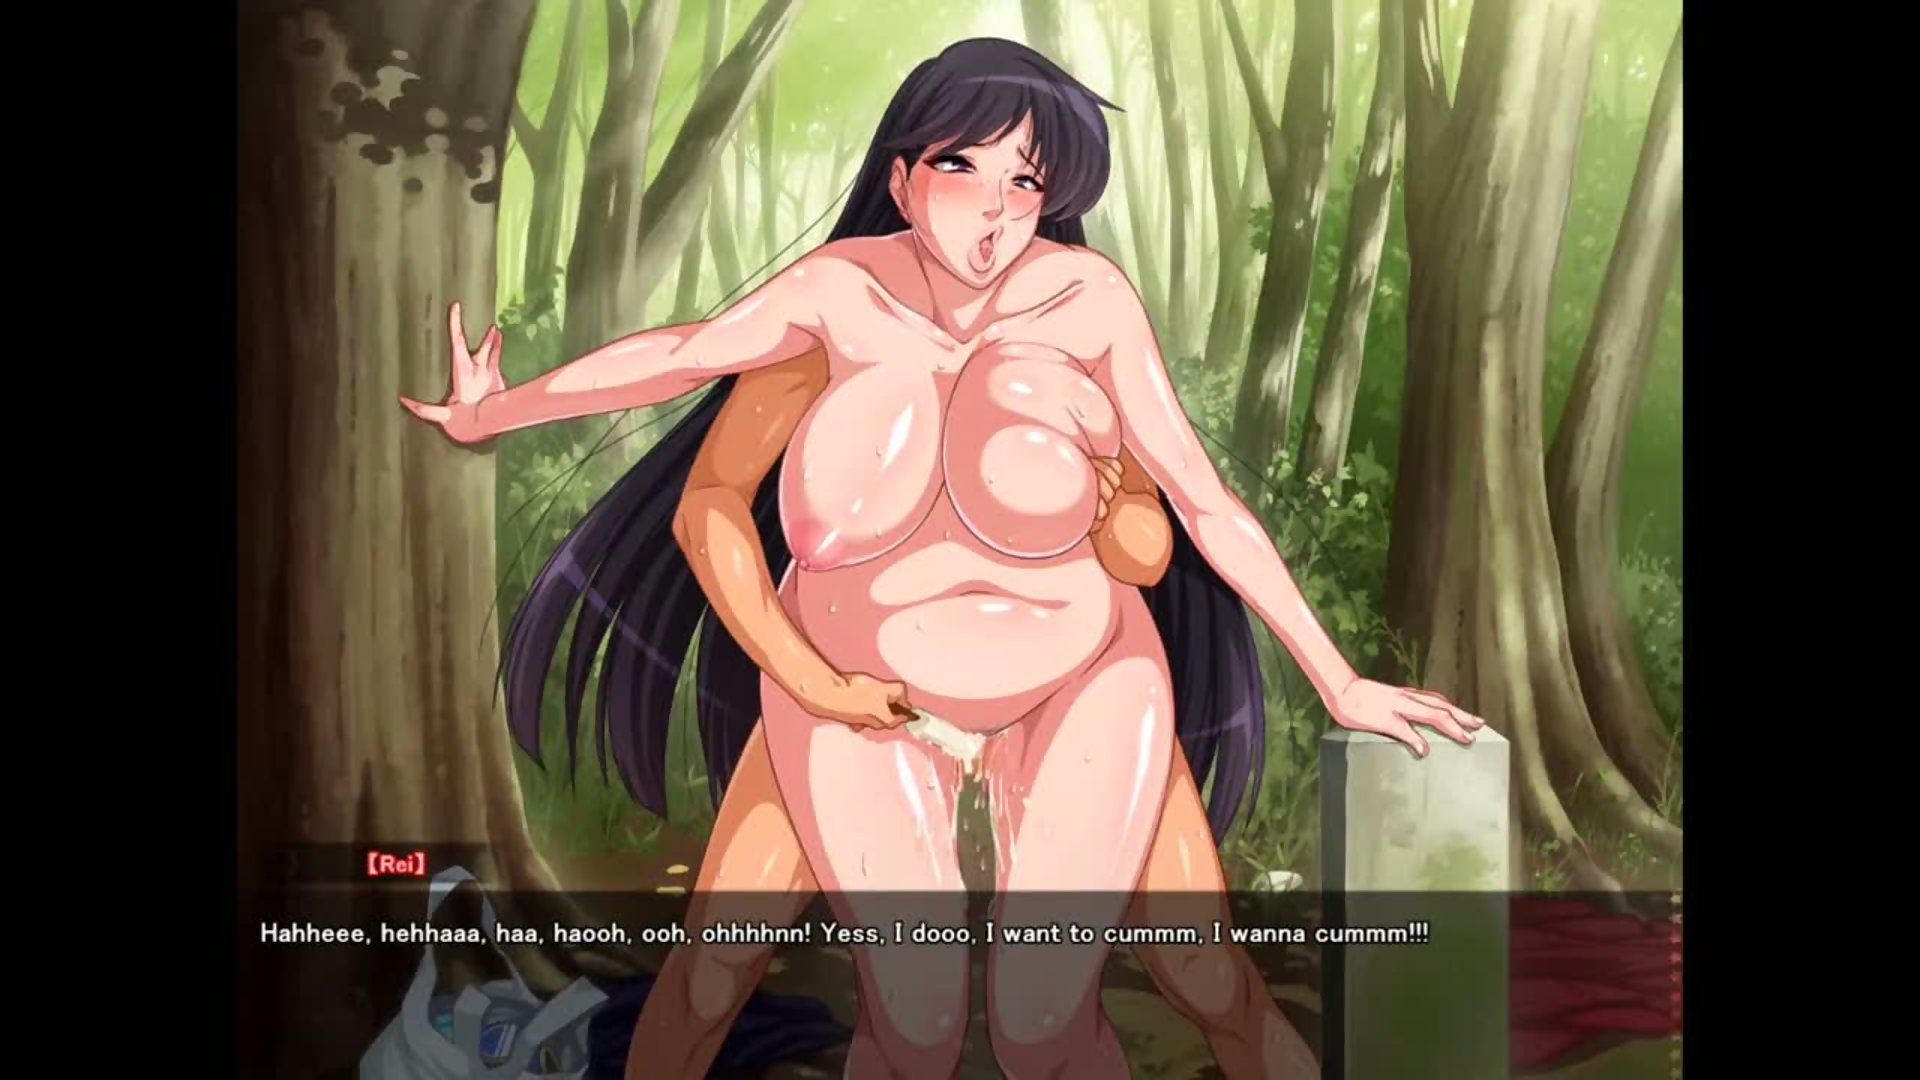 Fat Anime Sex Png